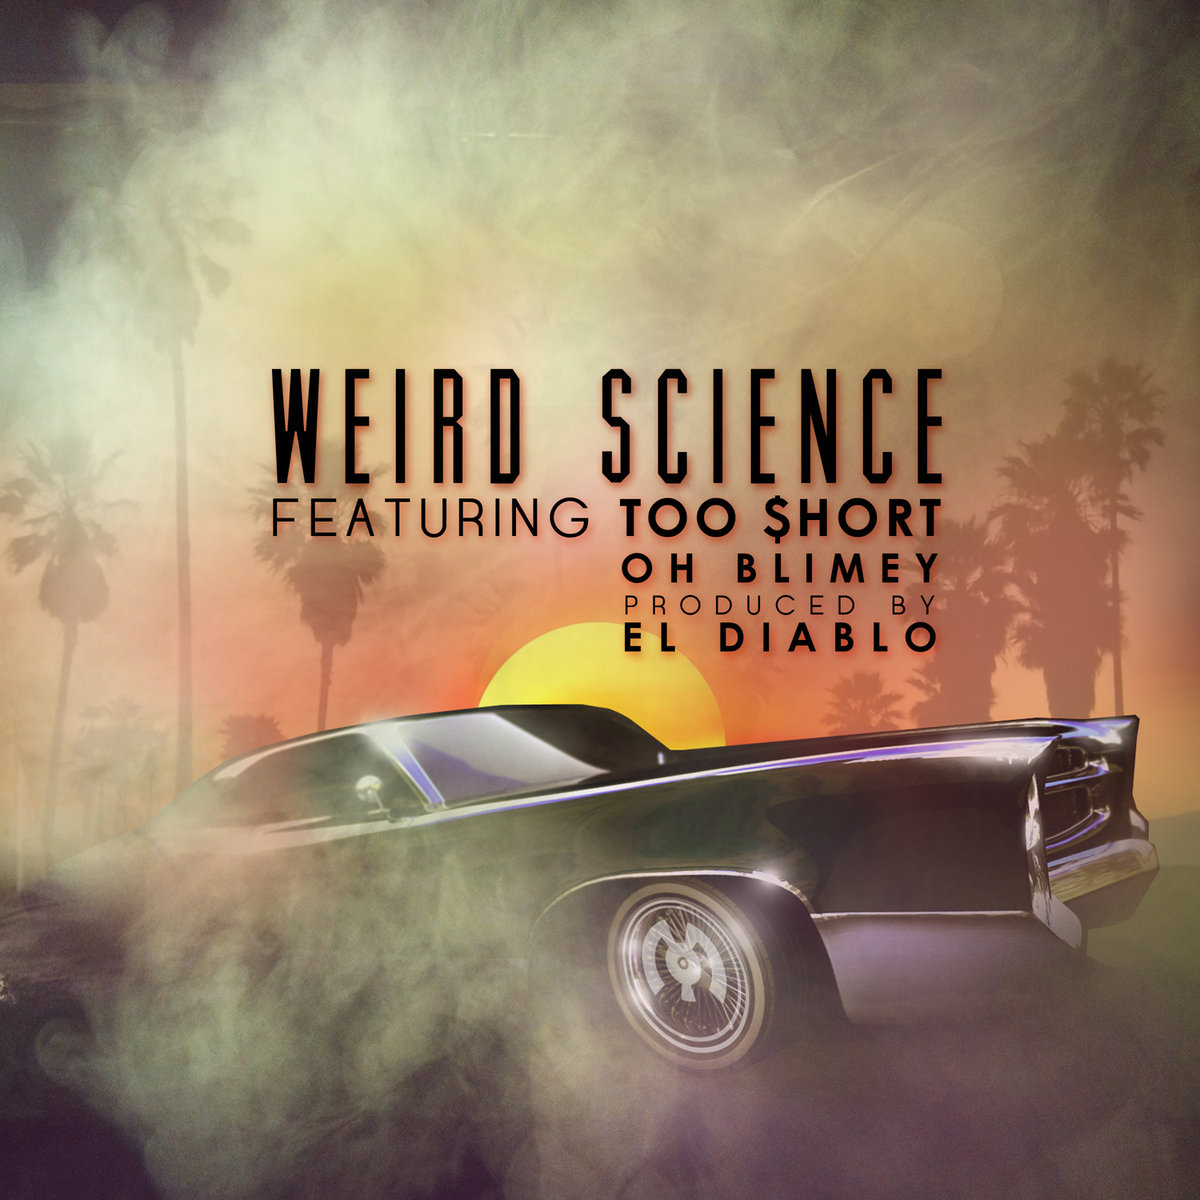 Too $hort, Oh Blimey, El Diablo - Weird Science (AHAB Remix) @ 'Weird Science' album (electronic, dubstep)